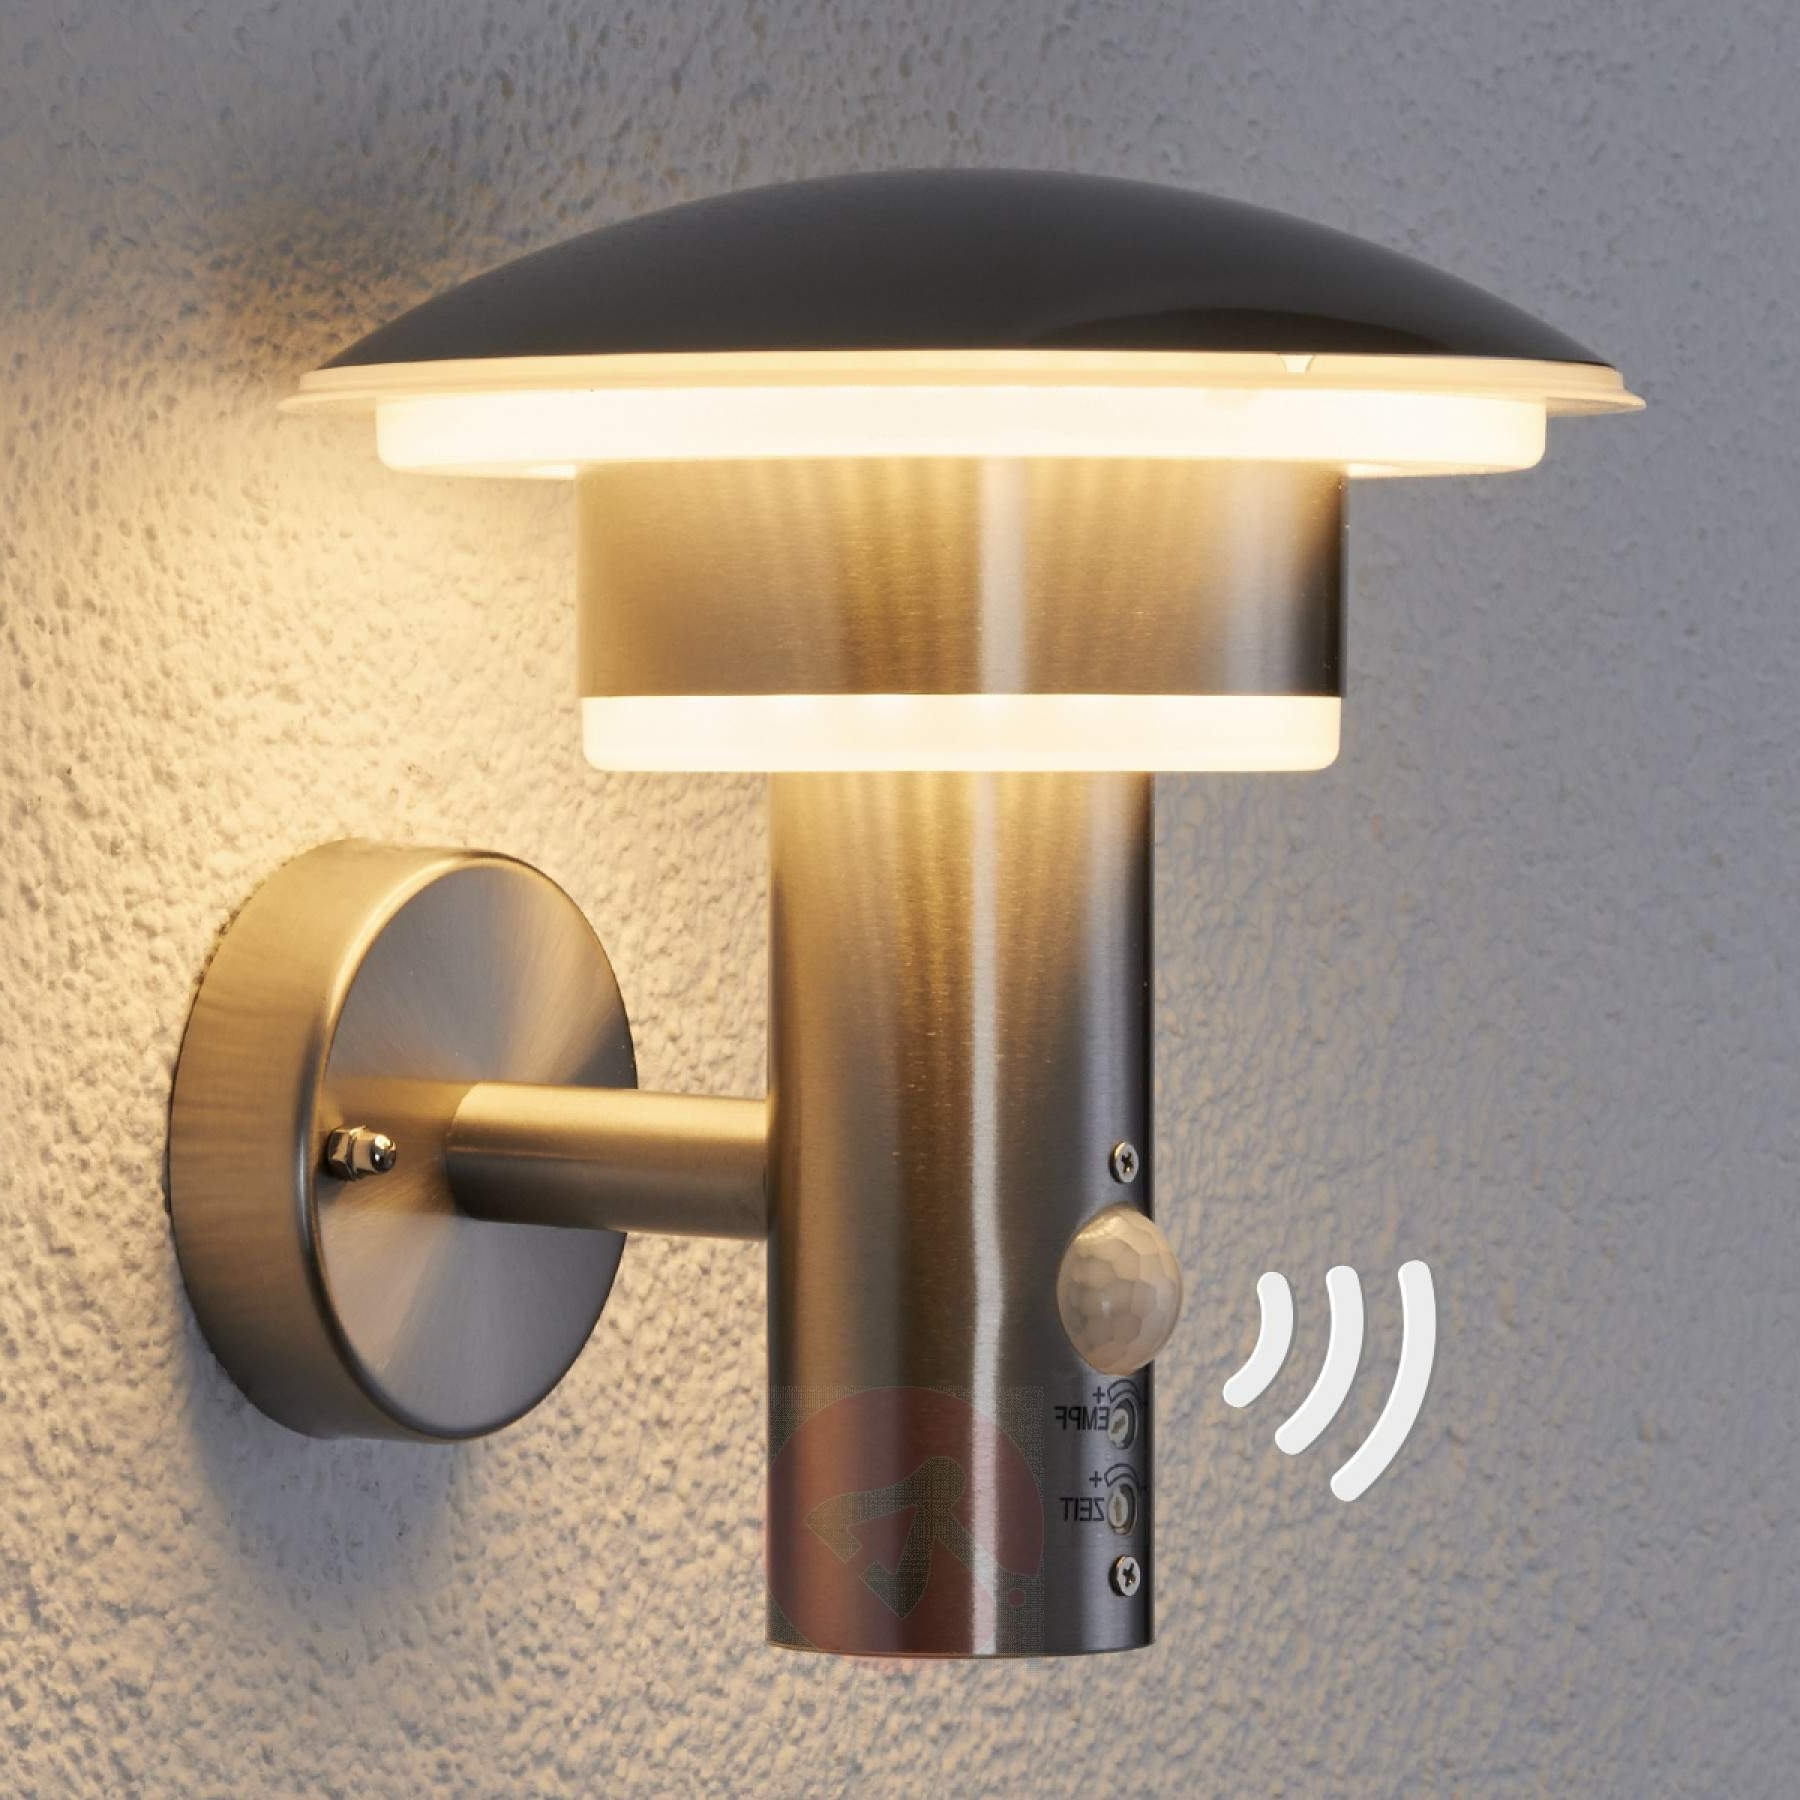 Pir Outdoor Wall Light Lillie With Leds (Gallery 9 of 20)